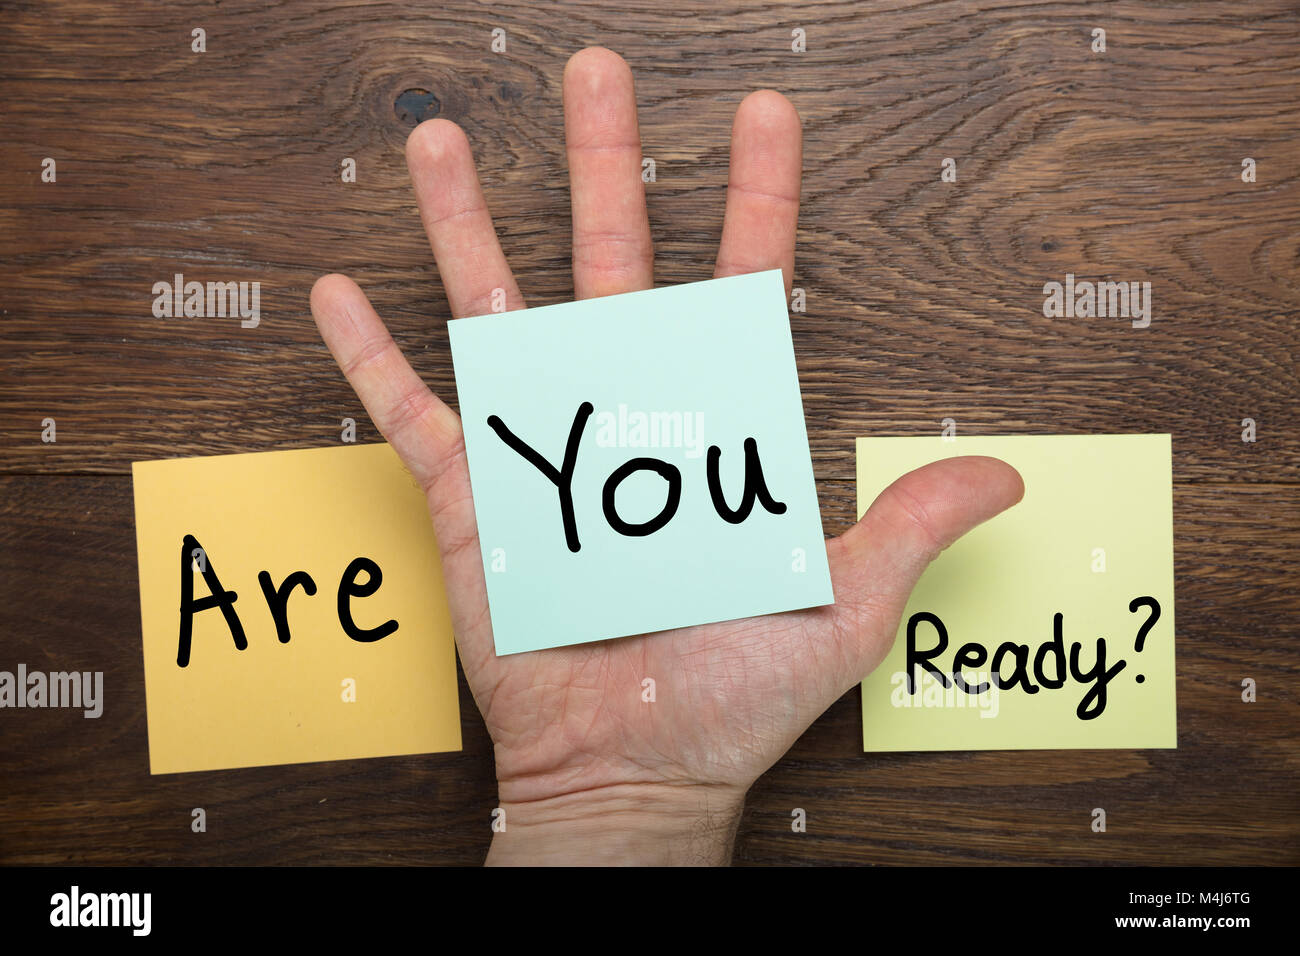 Are You Ready Concept Written On Stick Note At Wooden Desk - Stock Image